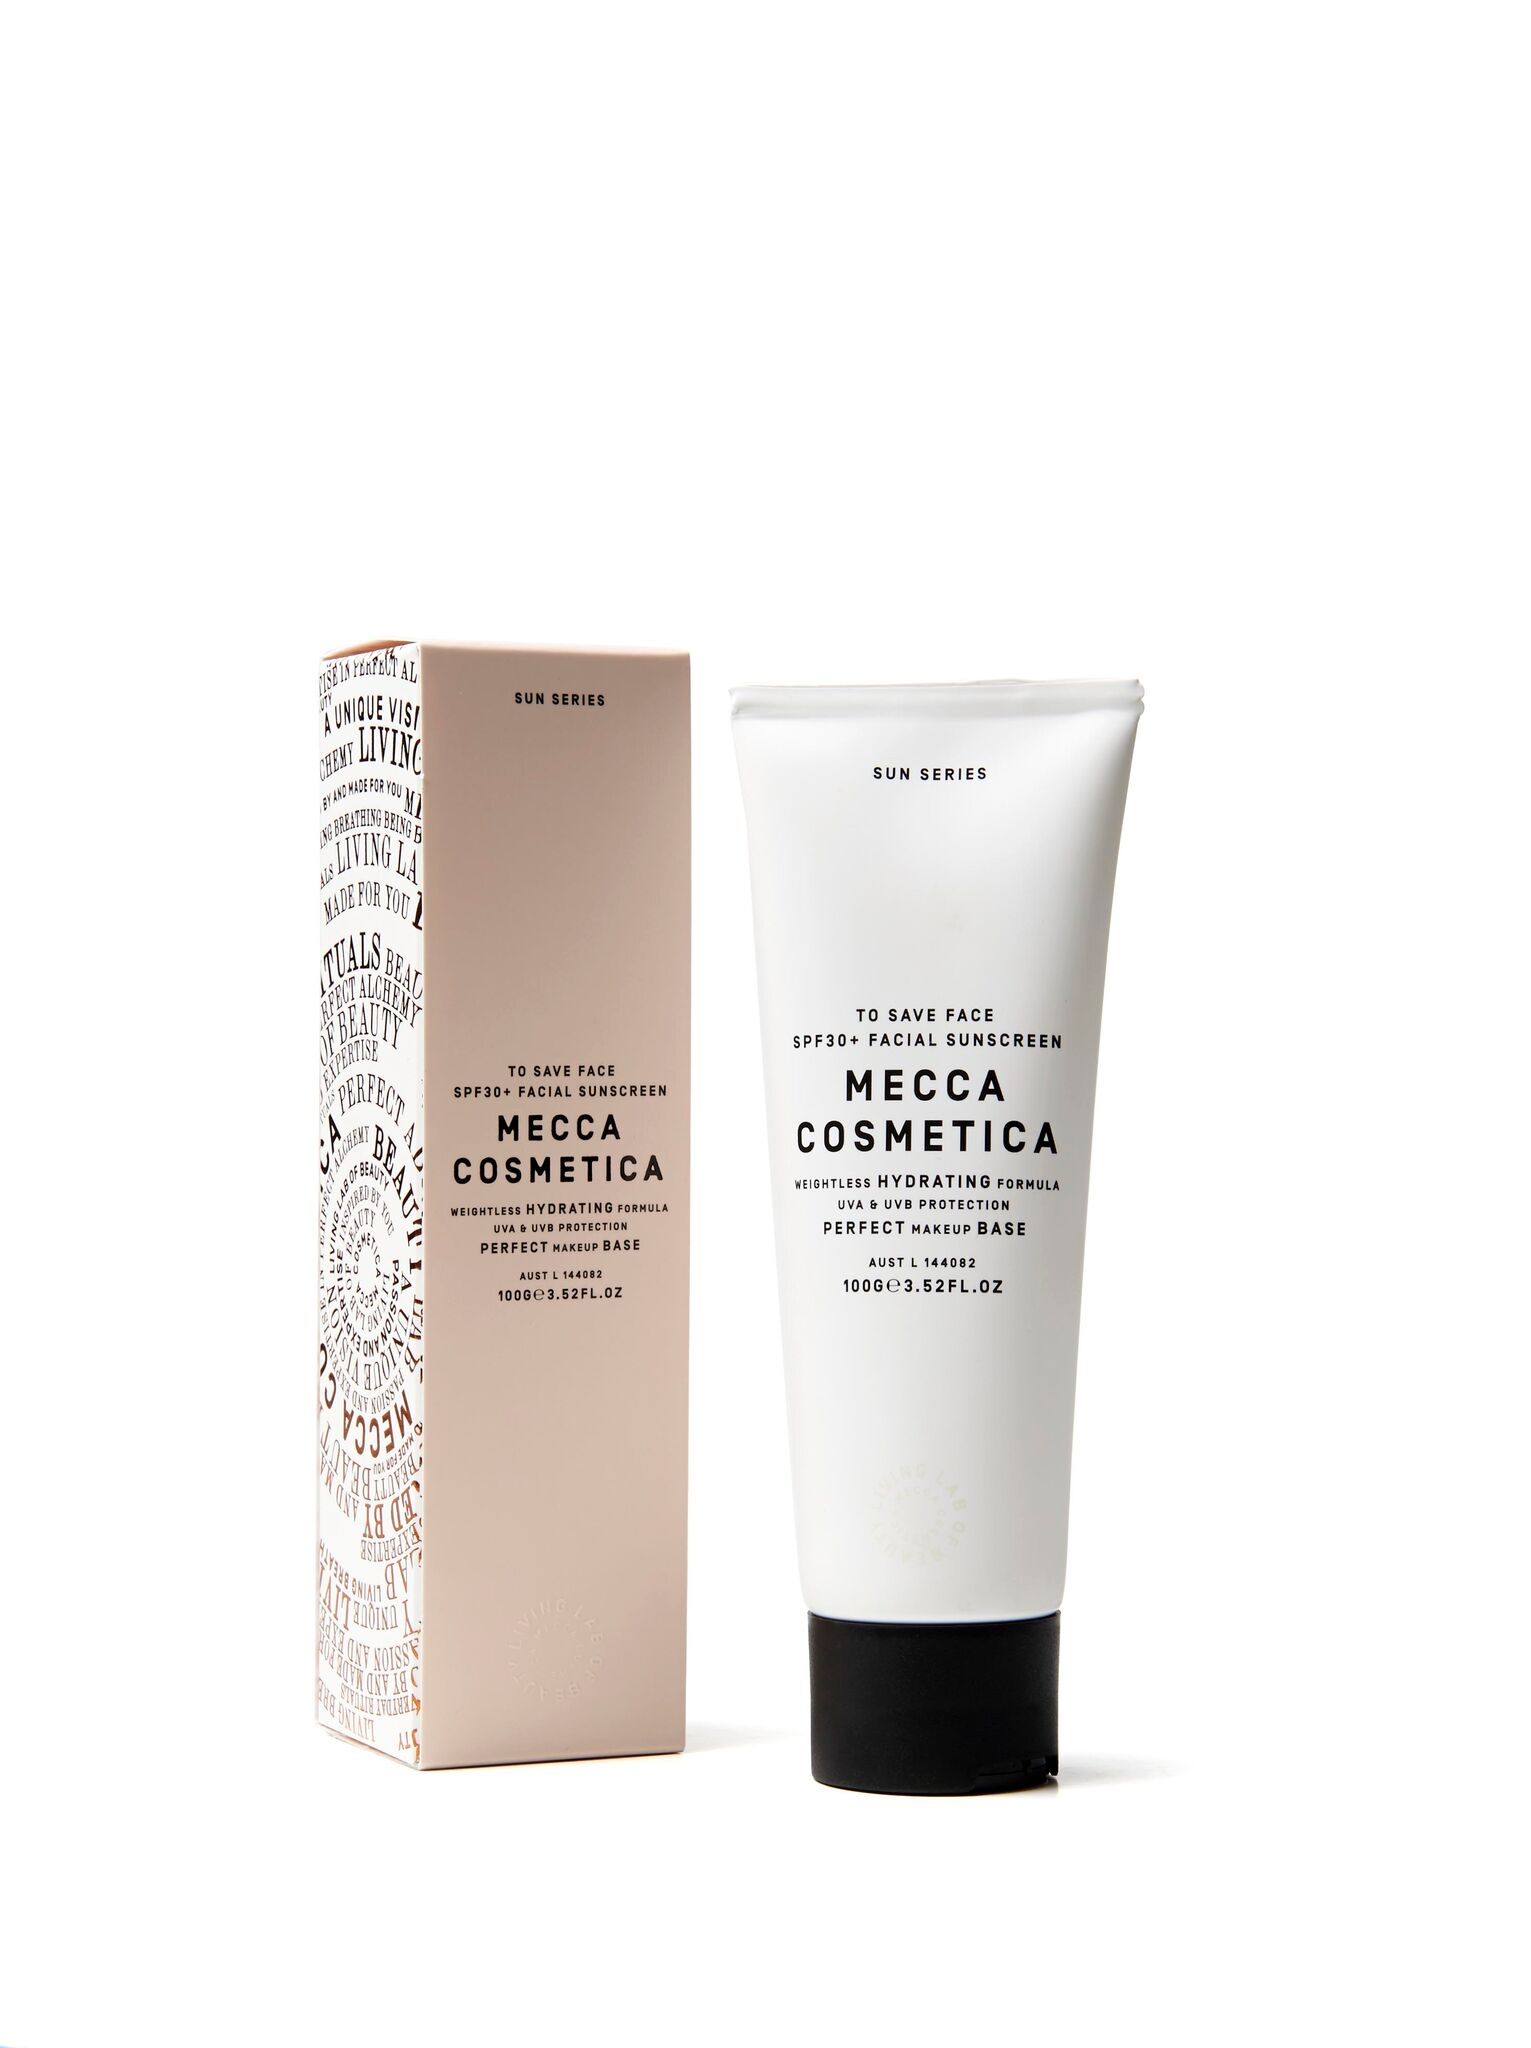 Mecca Cosmetica To Save Face SPF30+ Facial Sunscreen (Packaging)